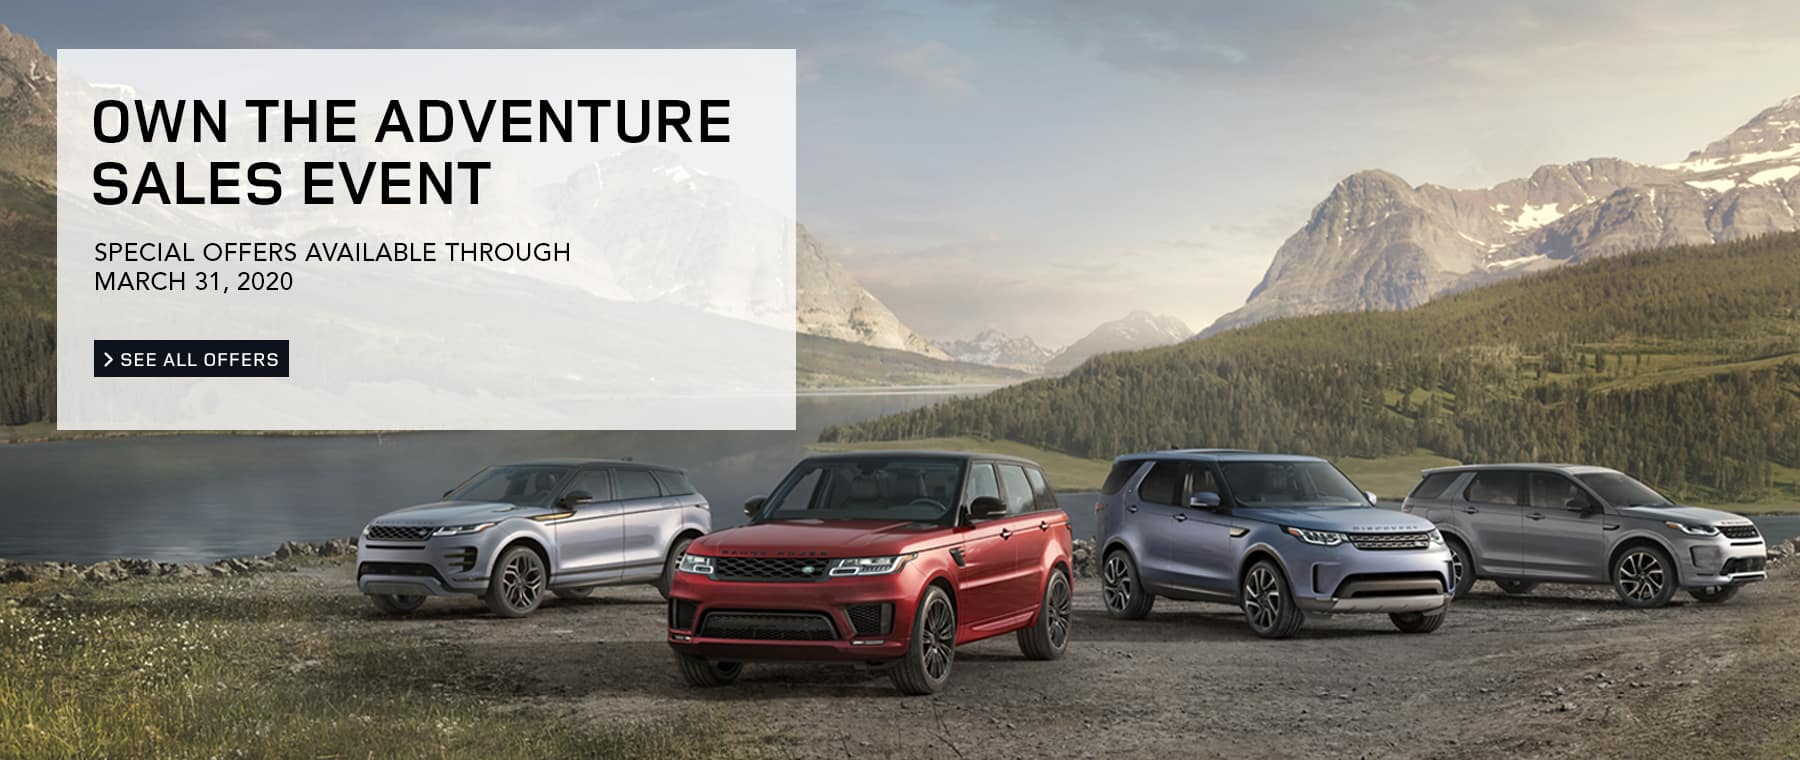 OWN THE ADVENTURE SALES EVENT. SPECIAL OFFERS AVAILABLE THROUGH MARCH 31, 2020. SEE ALL OFFERS.  IMAGE FEATURING LAND ROVER FLEET IMAGES PARKED NEAR LAKE IN VALLEY OF MOUNTAINS.